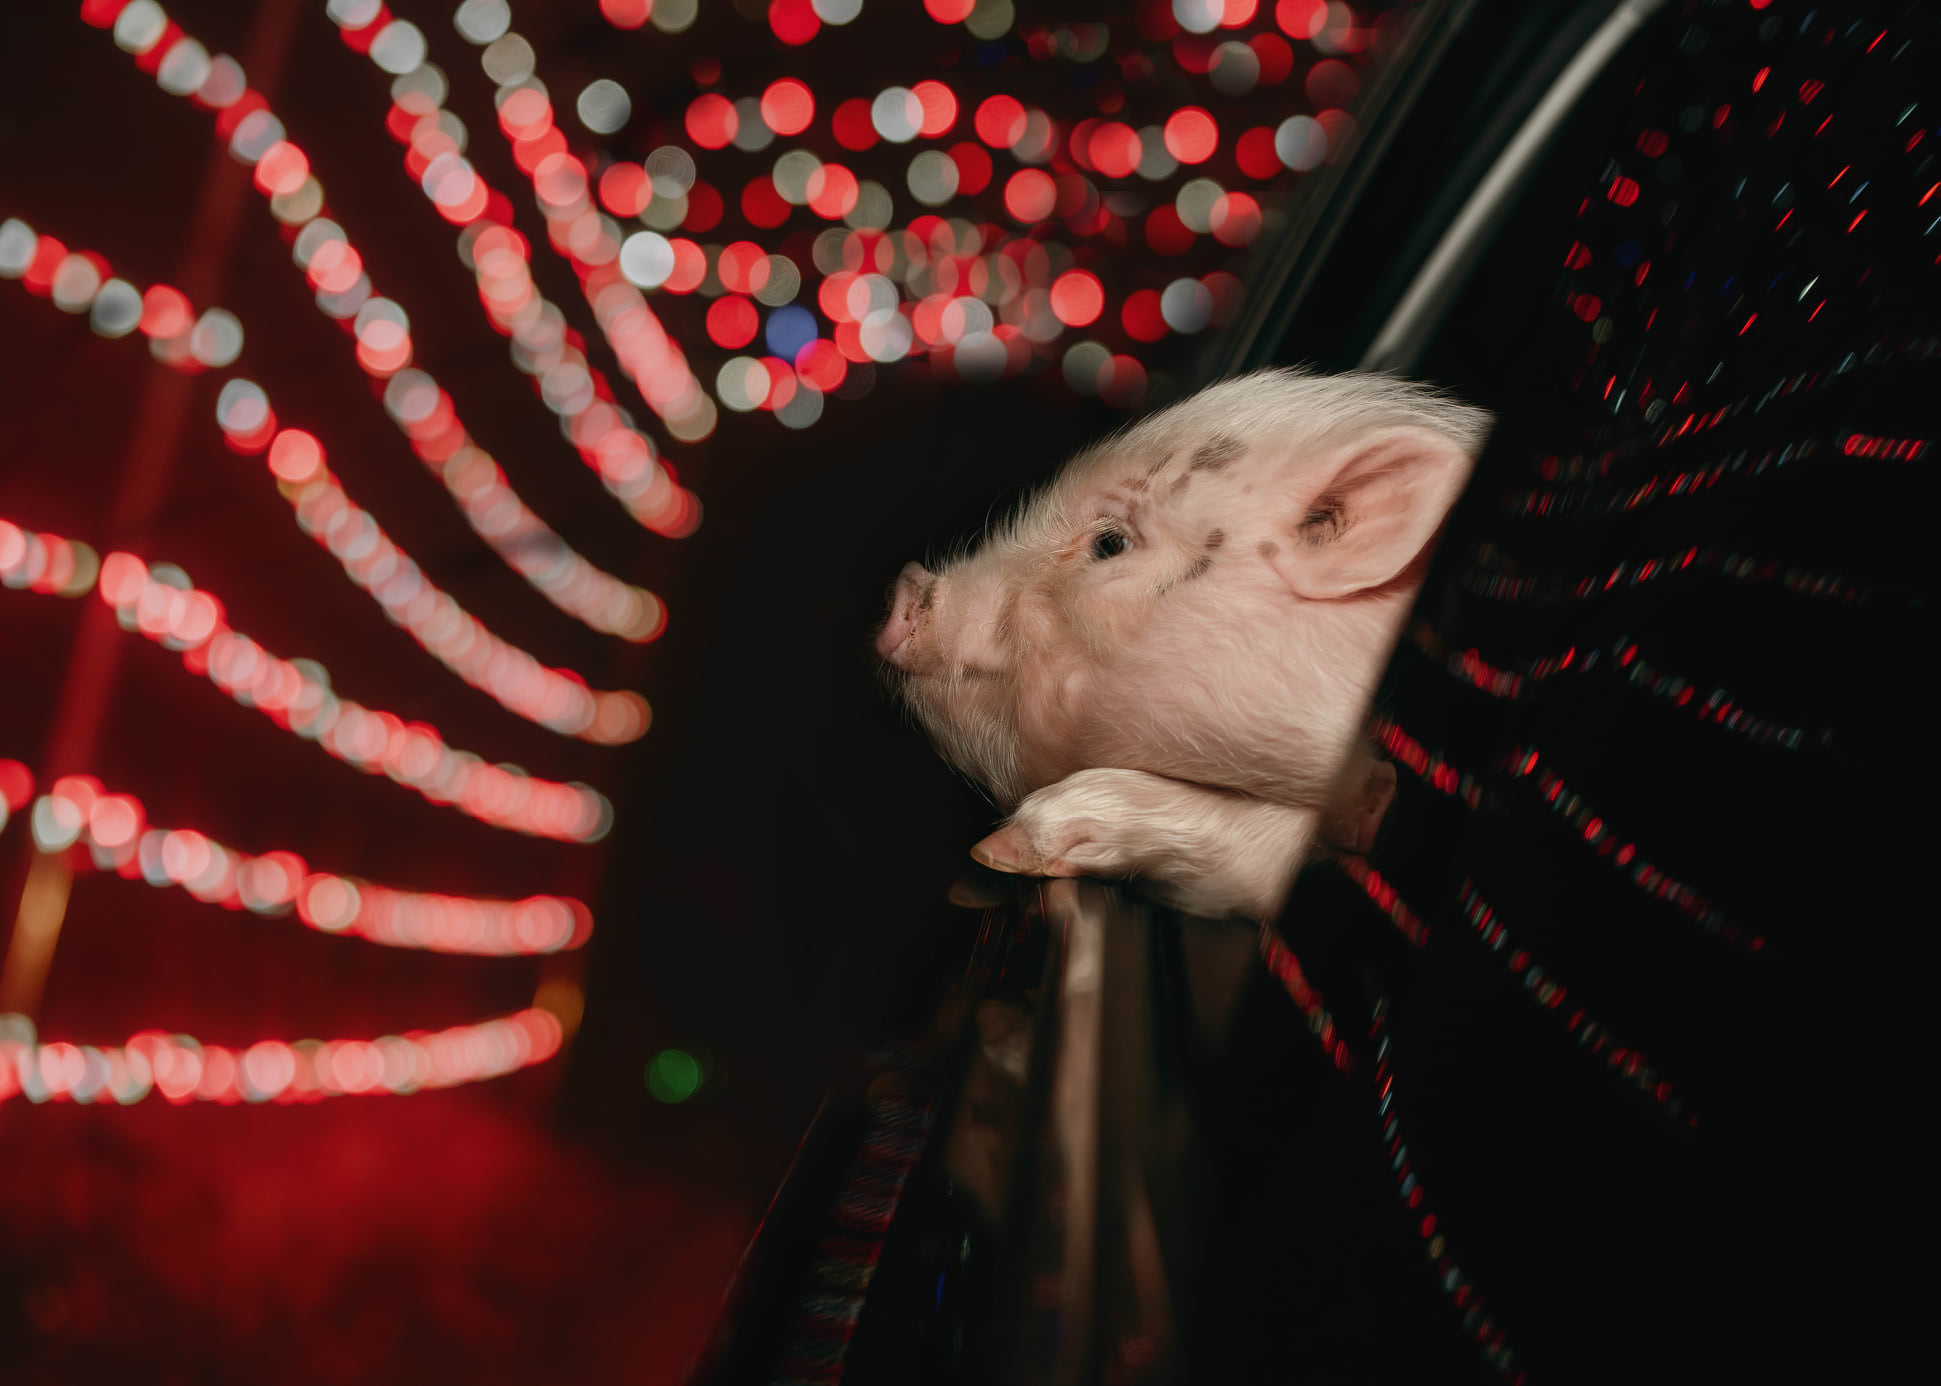 a cute mini pig looks on red Christmas lights from a car window